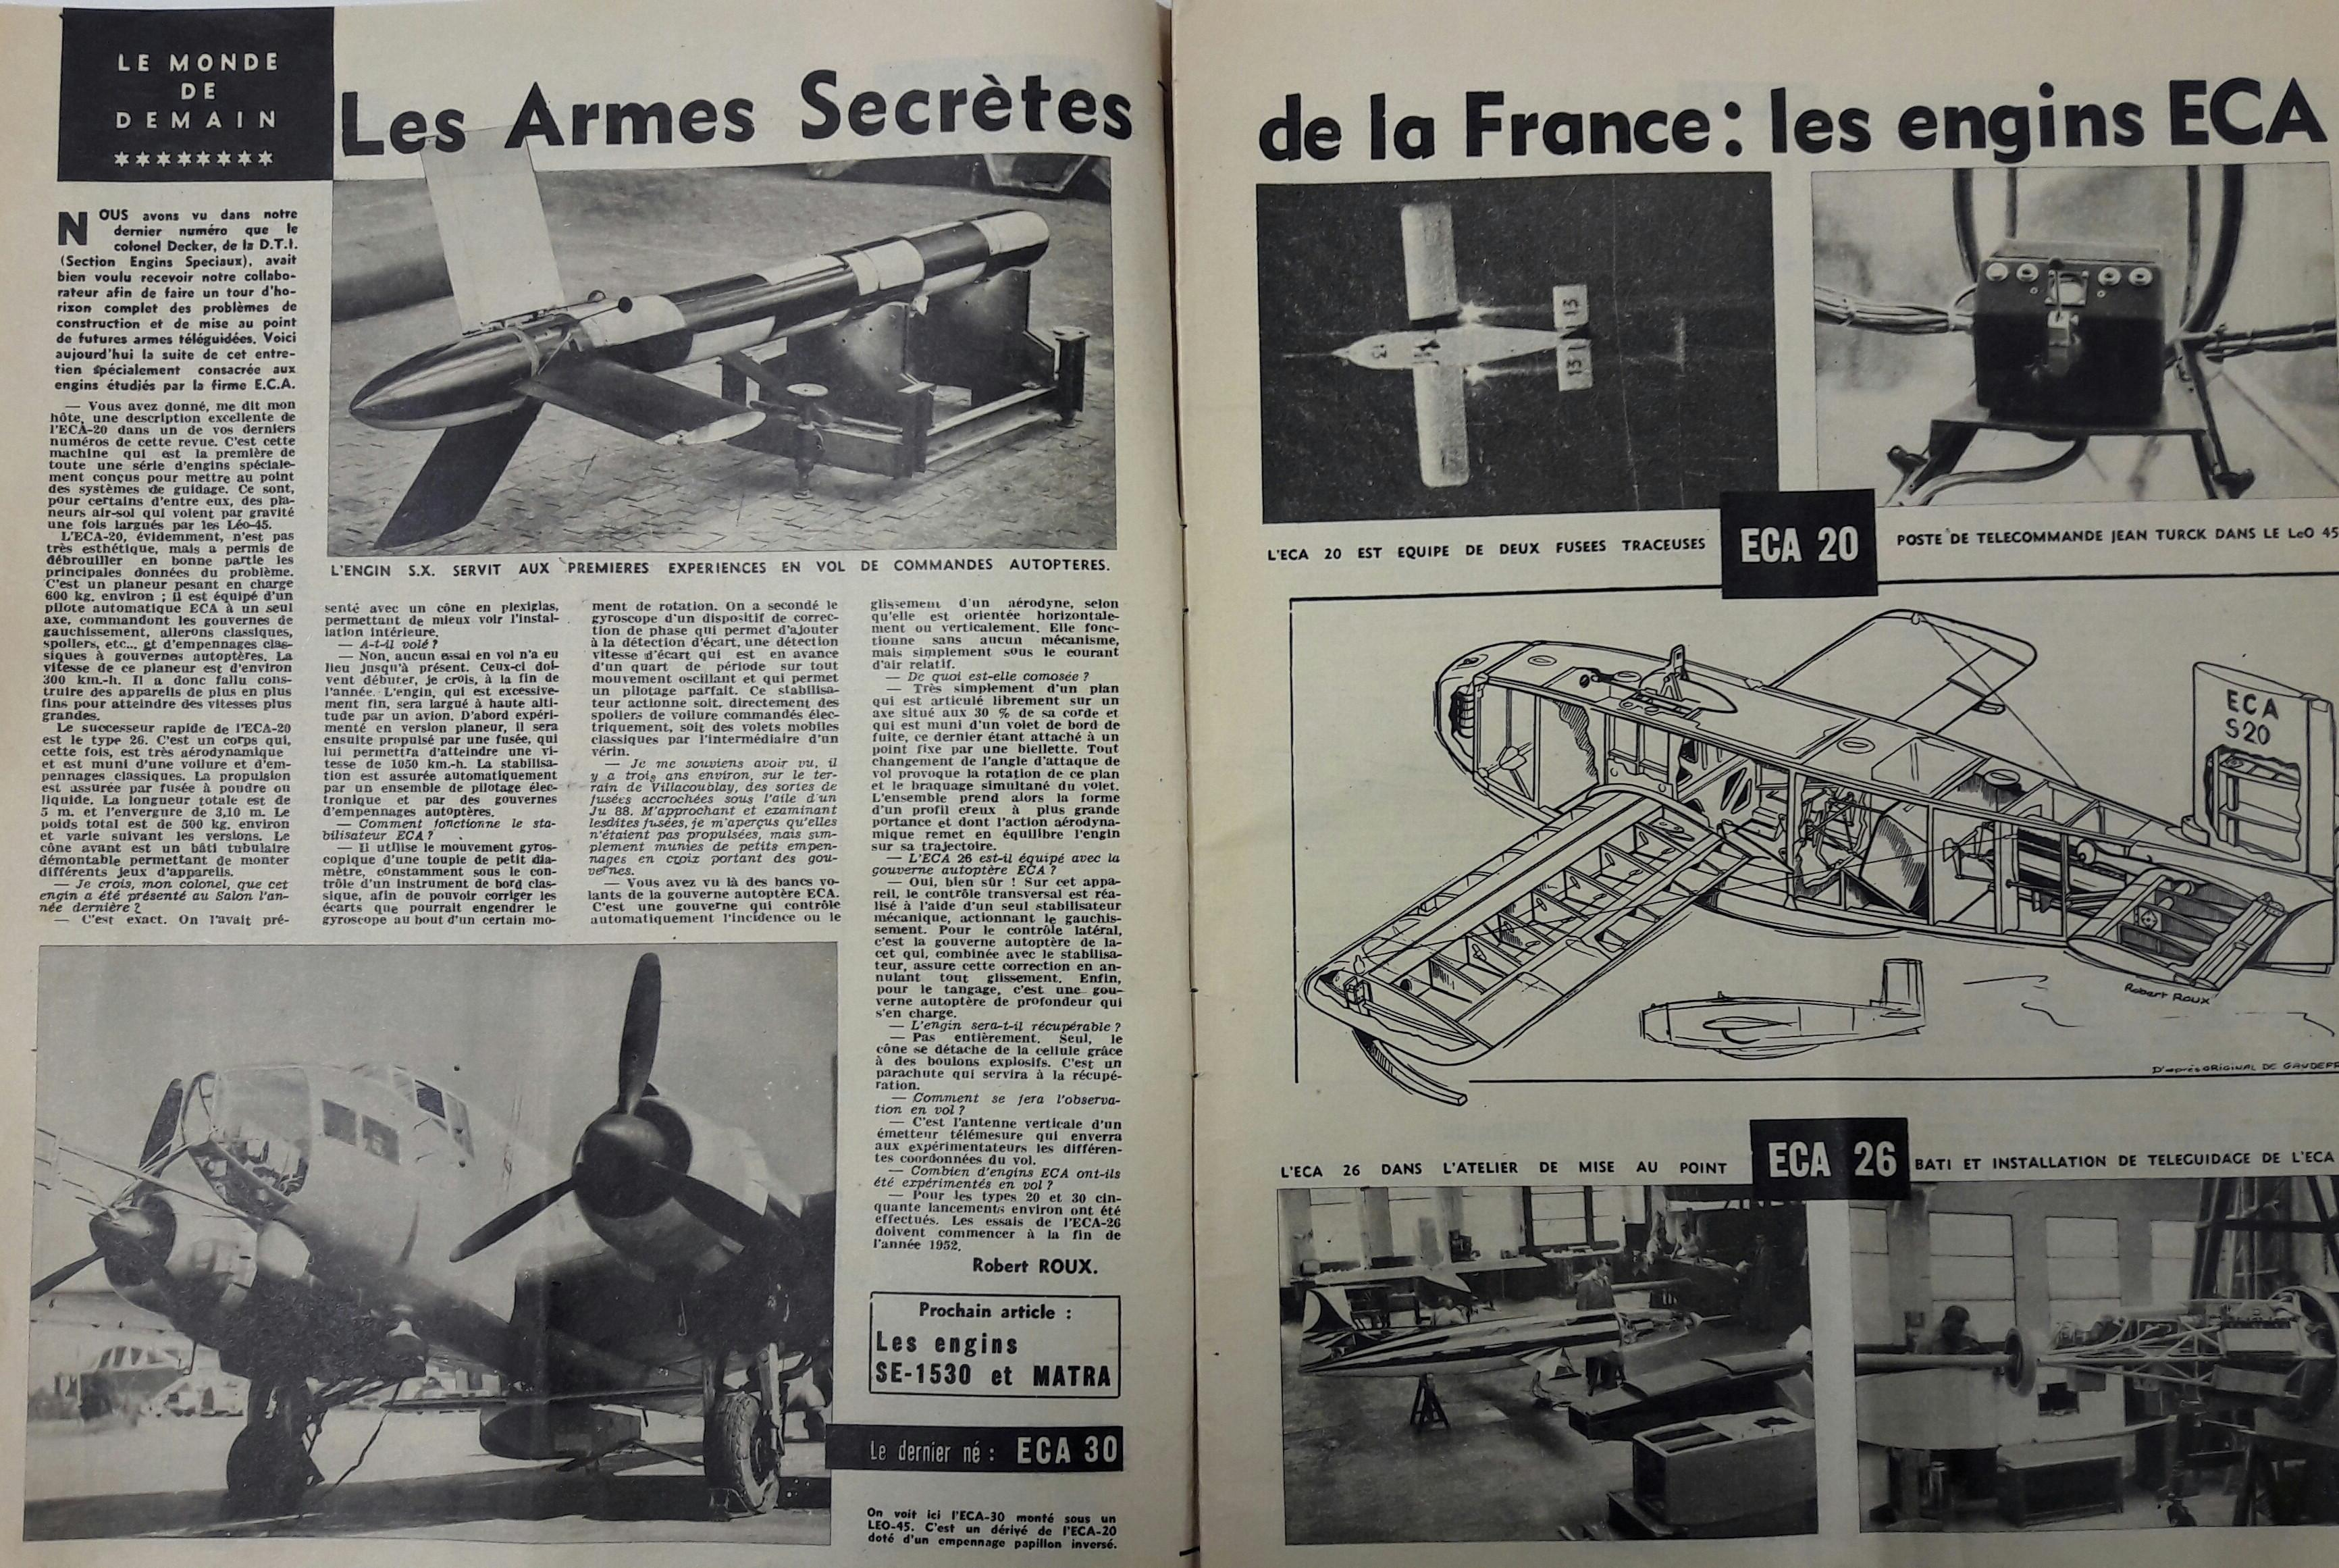 ECA GROUP-TIMELINE- LES ARMES SECRETES DE LA FRANCE - LES ENGINS ECA